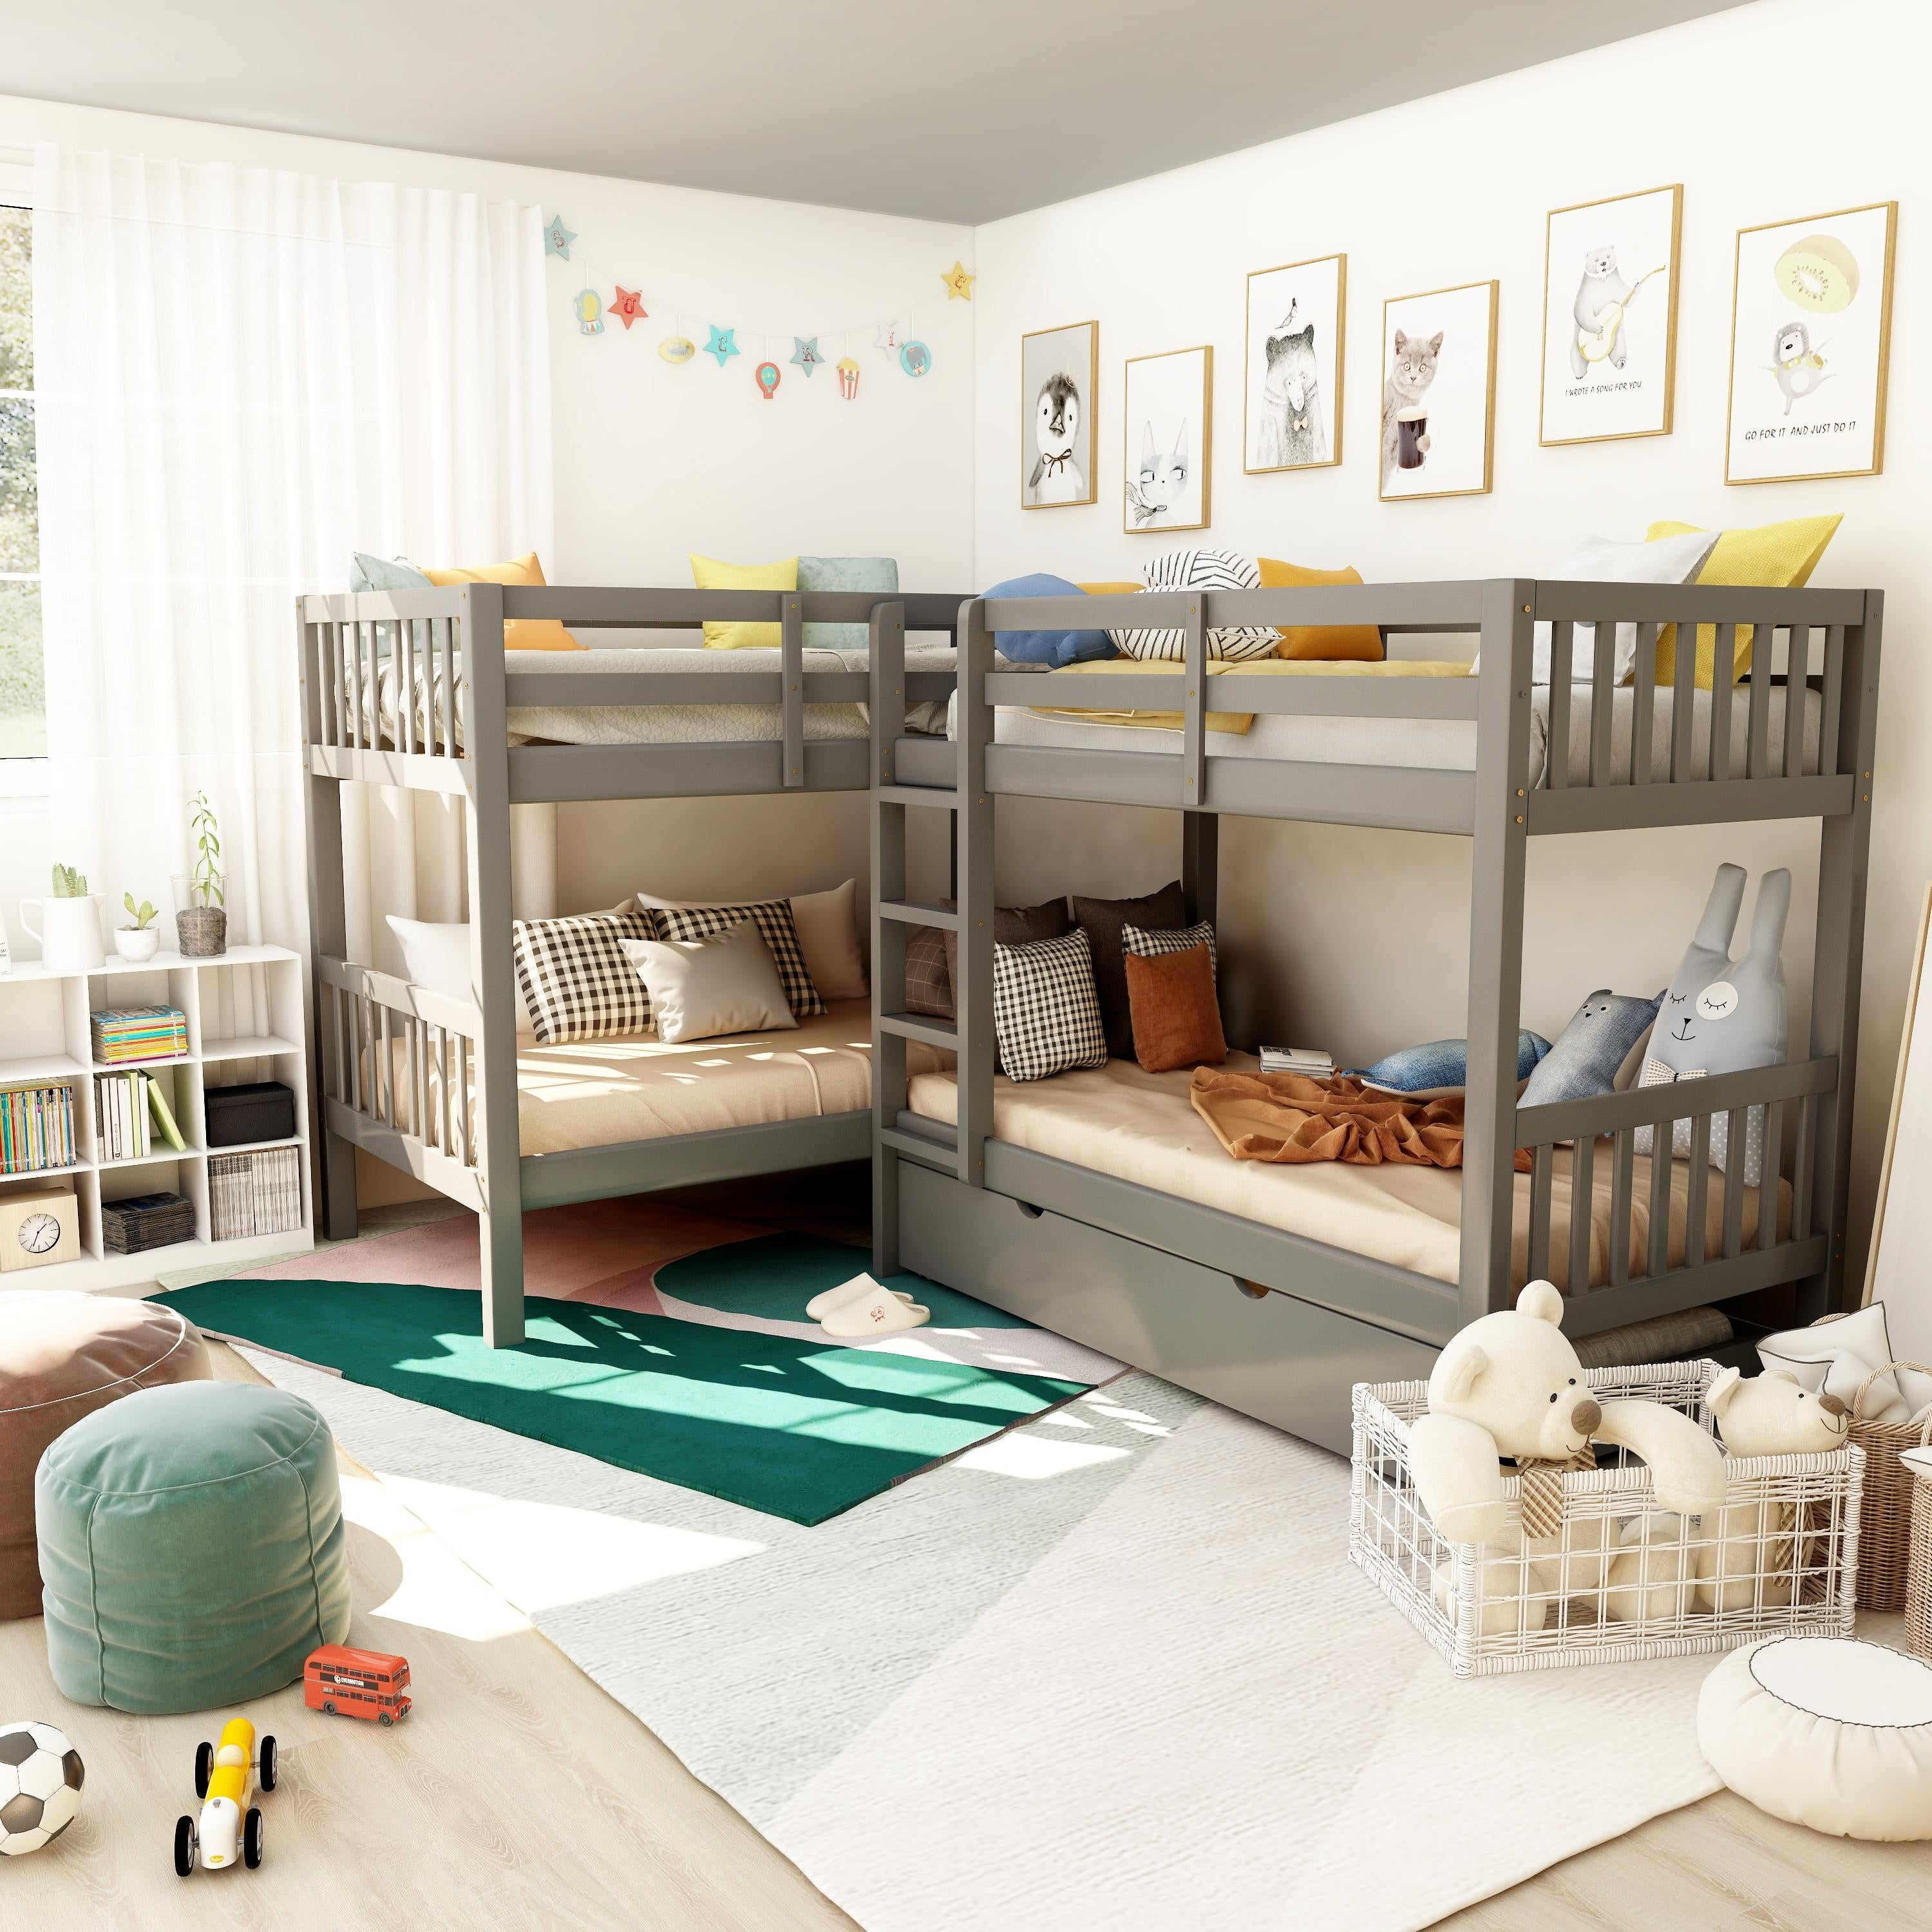 Furniture Of America Jis Modern Twin Solid Wood L Shaped Bunk Bed On Sale Overstock 14406666 Grey